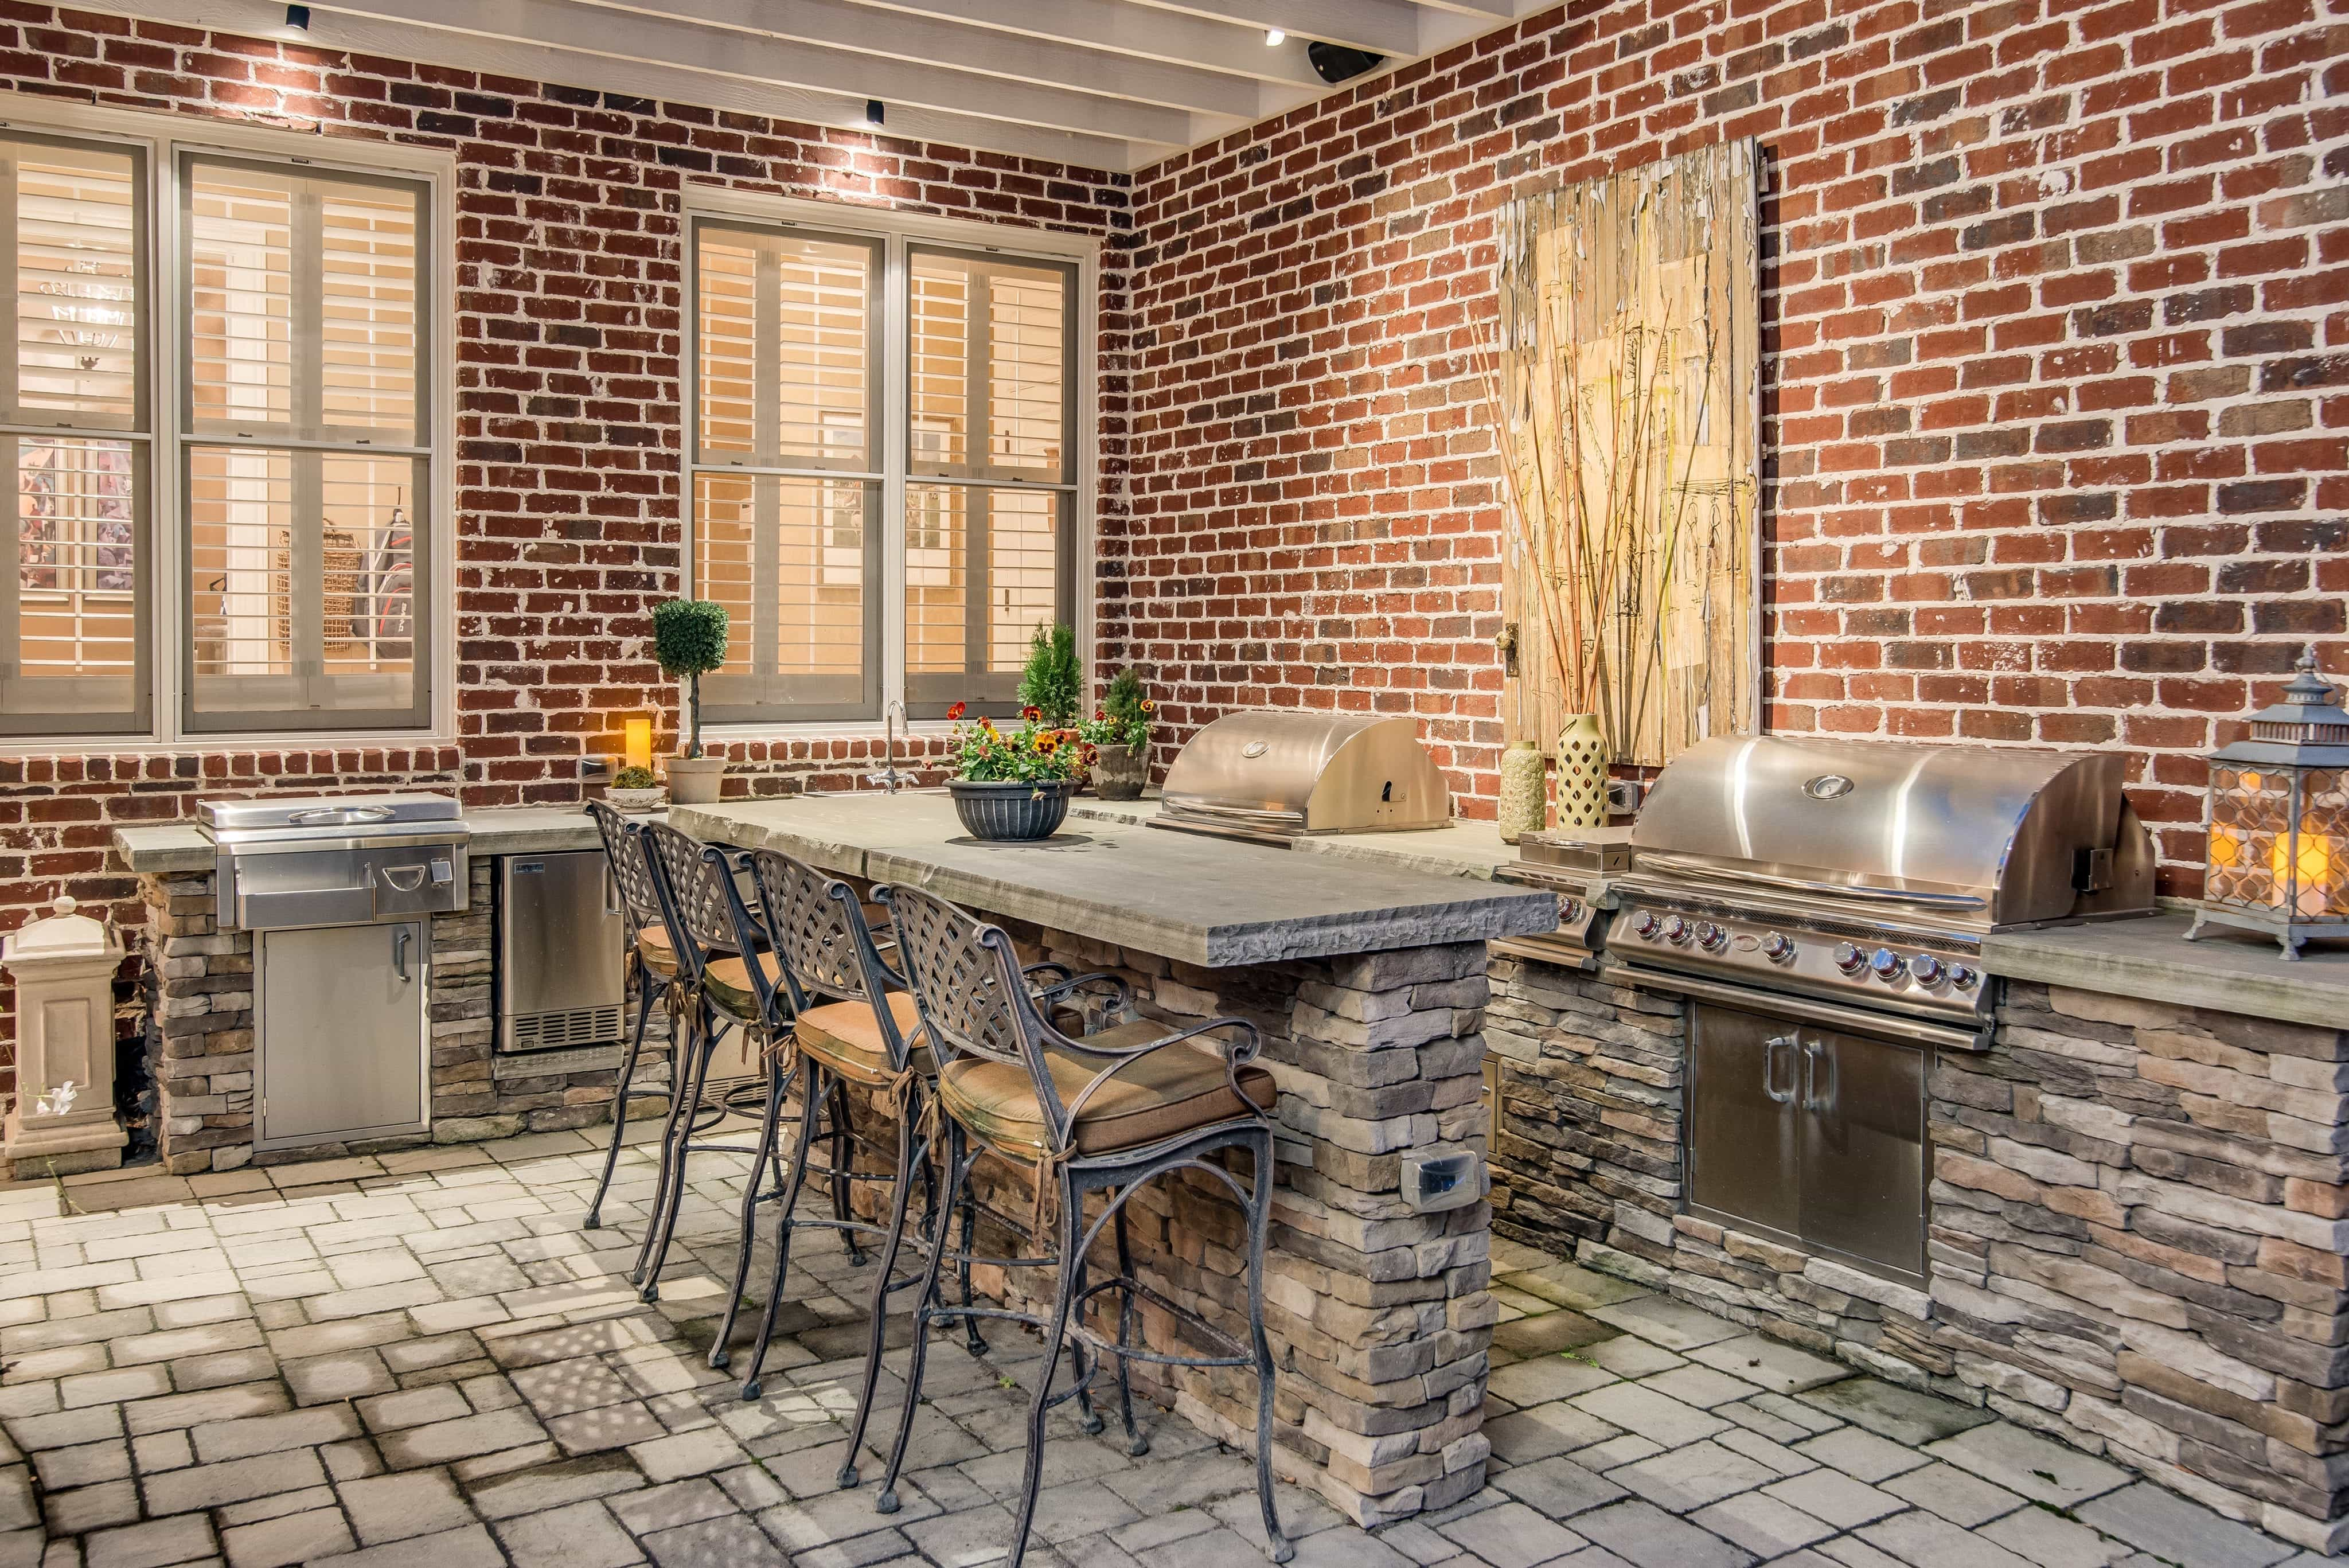 Contemporary Patio With Red Brick Walls (Image 7 of 30)